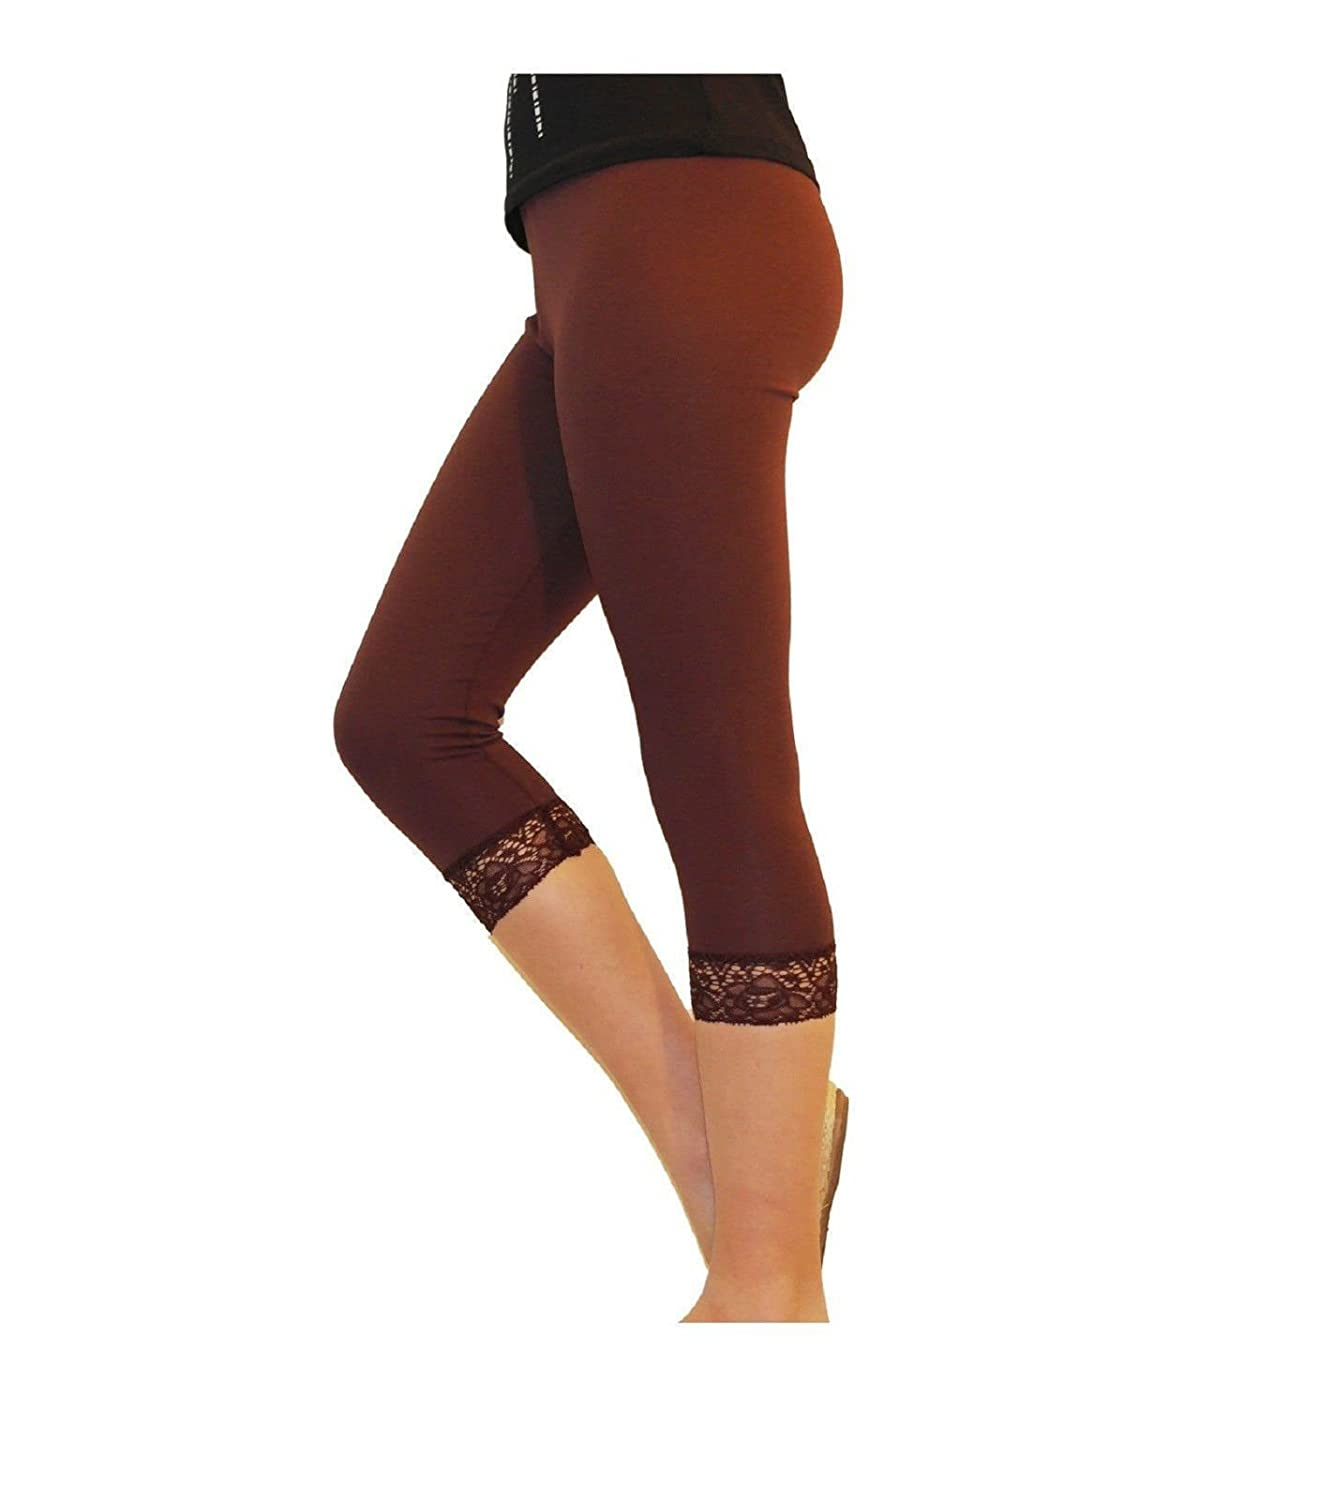 Elegance Girl/'s Cotton Crop 3//4 Stretchy Laced Trim Leggings for Casual//Sport//Active